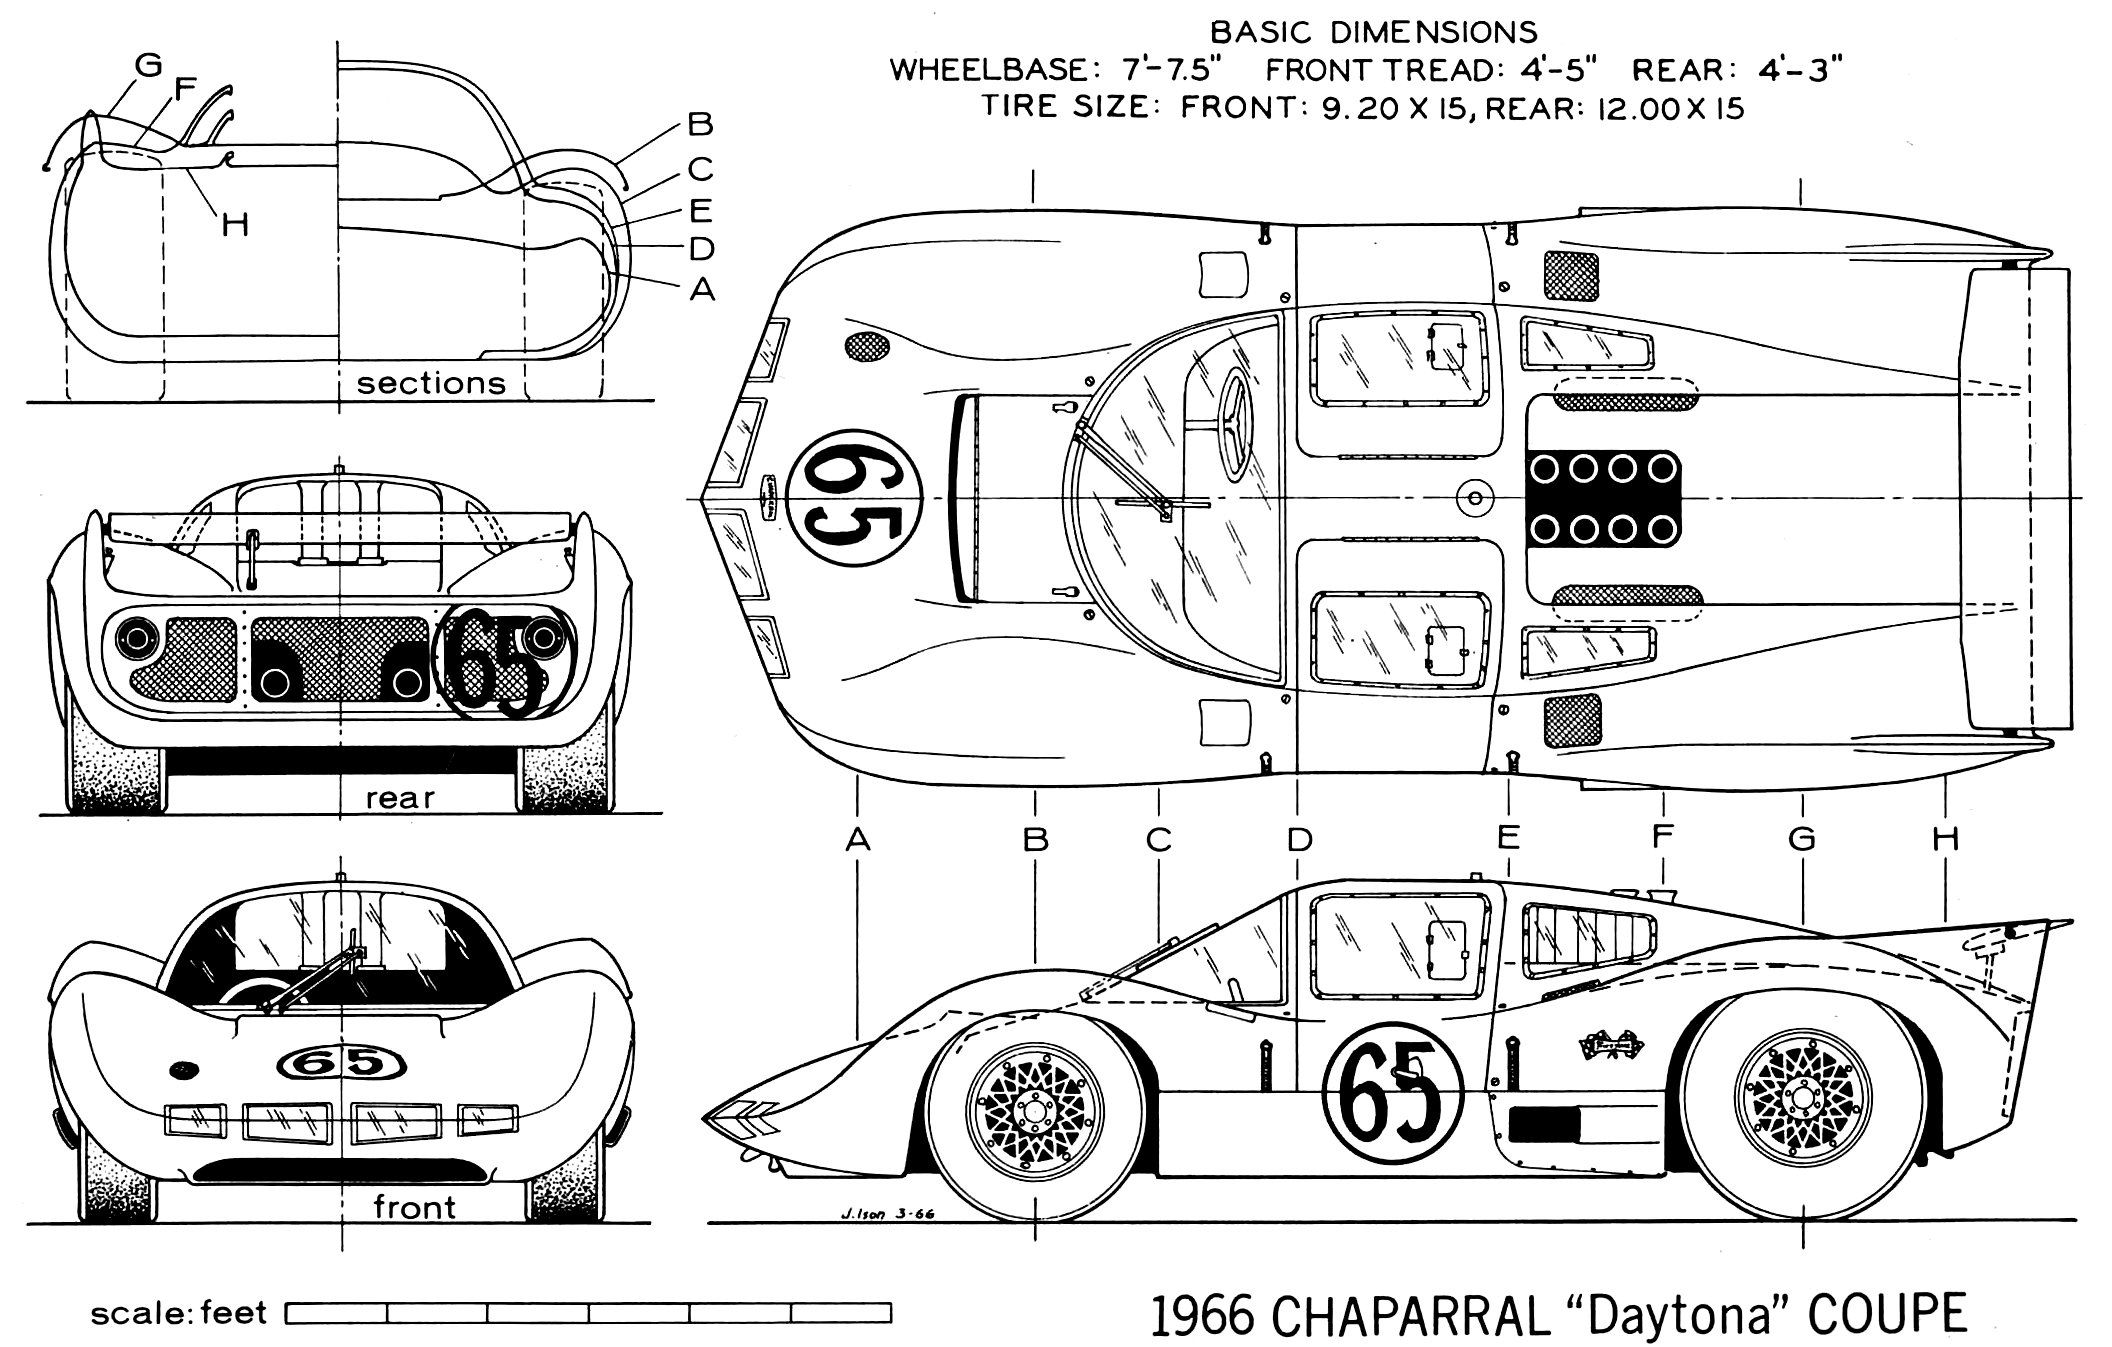 Line Drawing Of The Chaparral 2d As Configured For Daytona